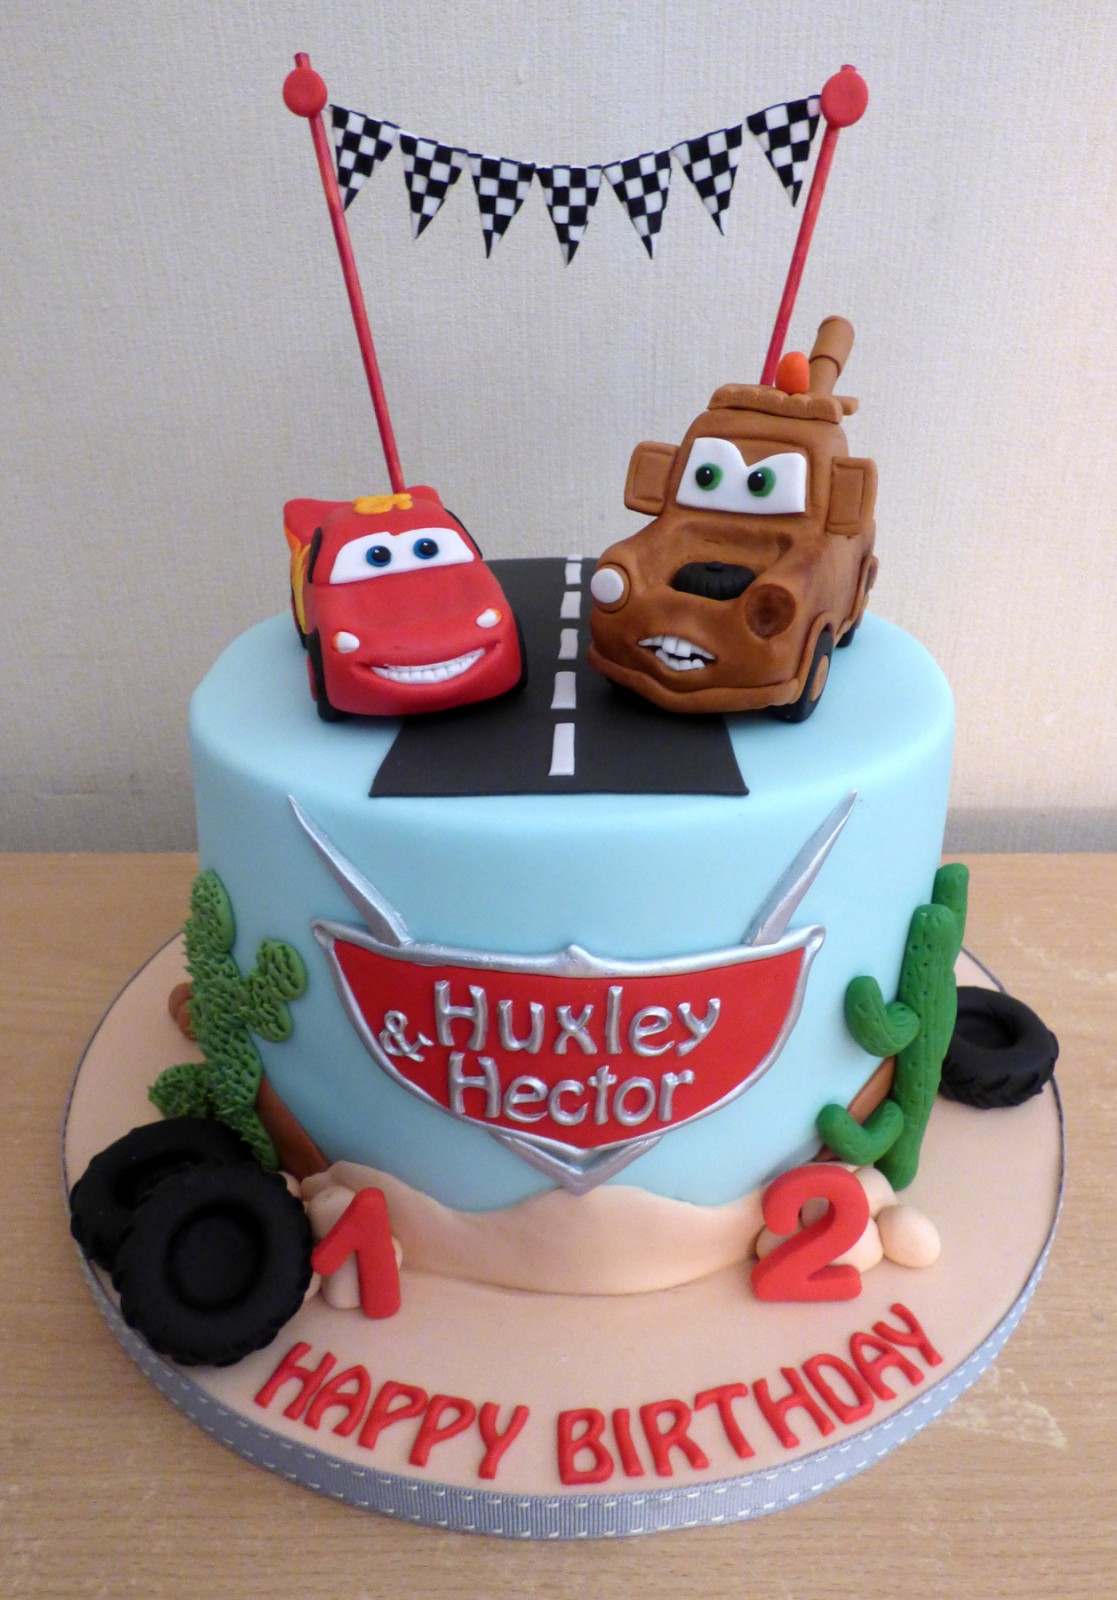 Pleasing Disney Pixar Cars Themed Birthday Cake Susies Cakes Funny Birthday Cards Online Alyptdamsfinfo